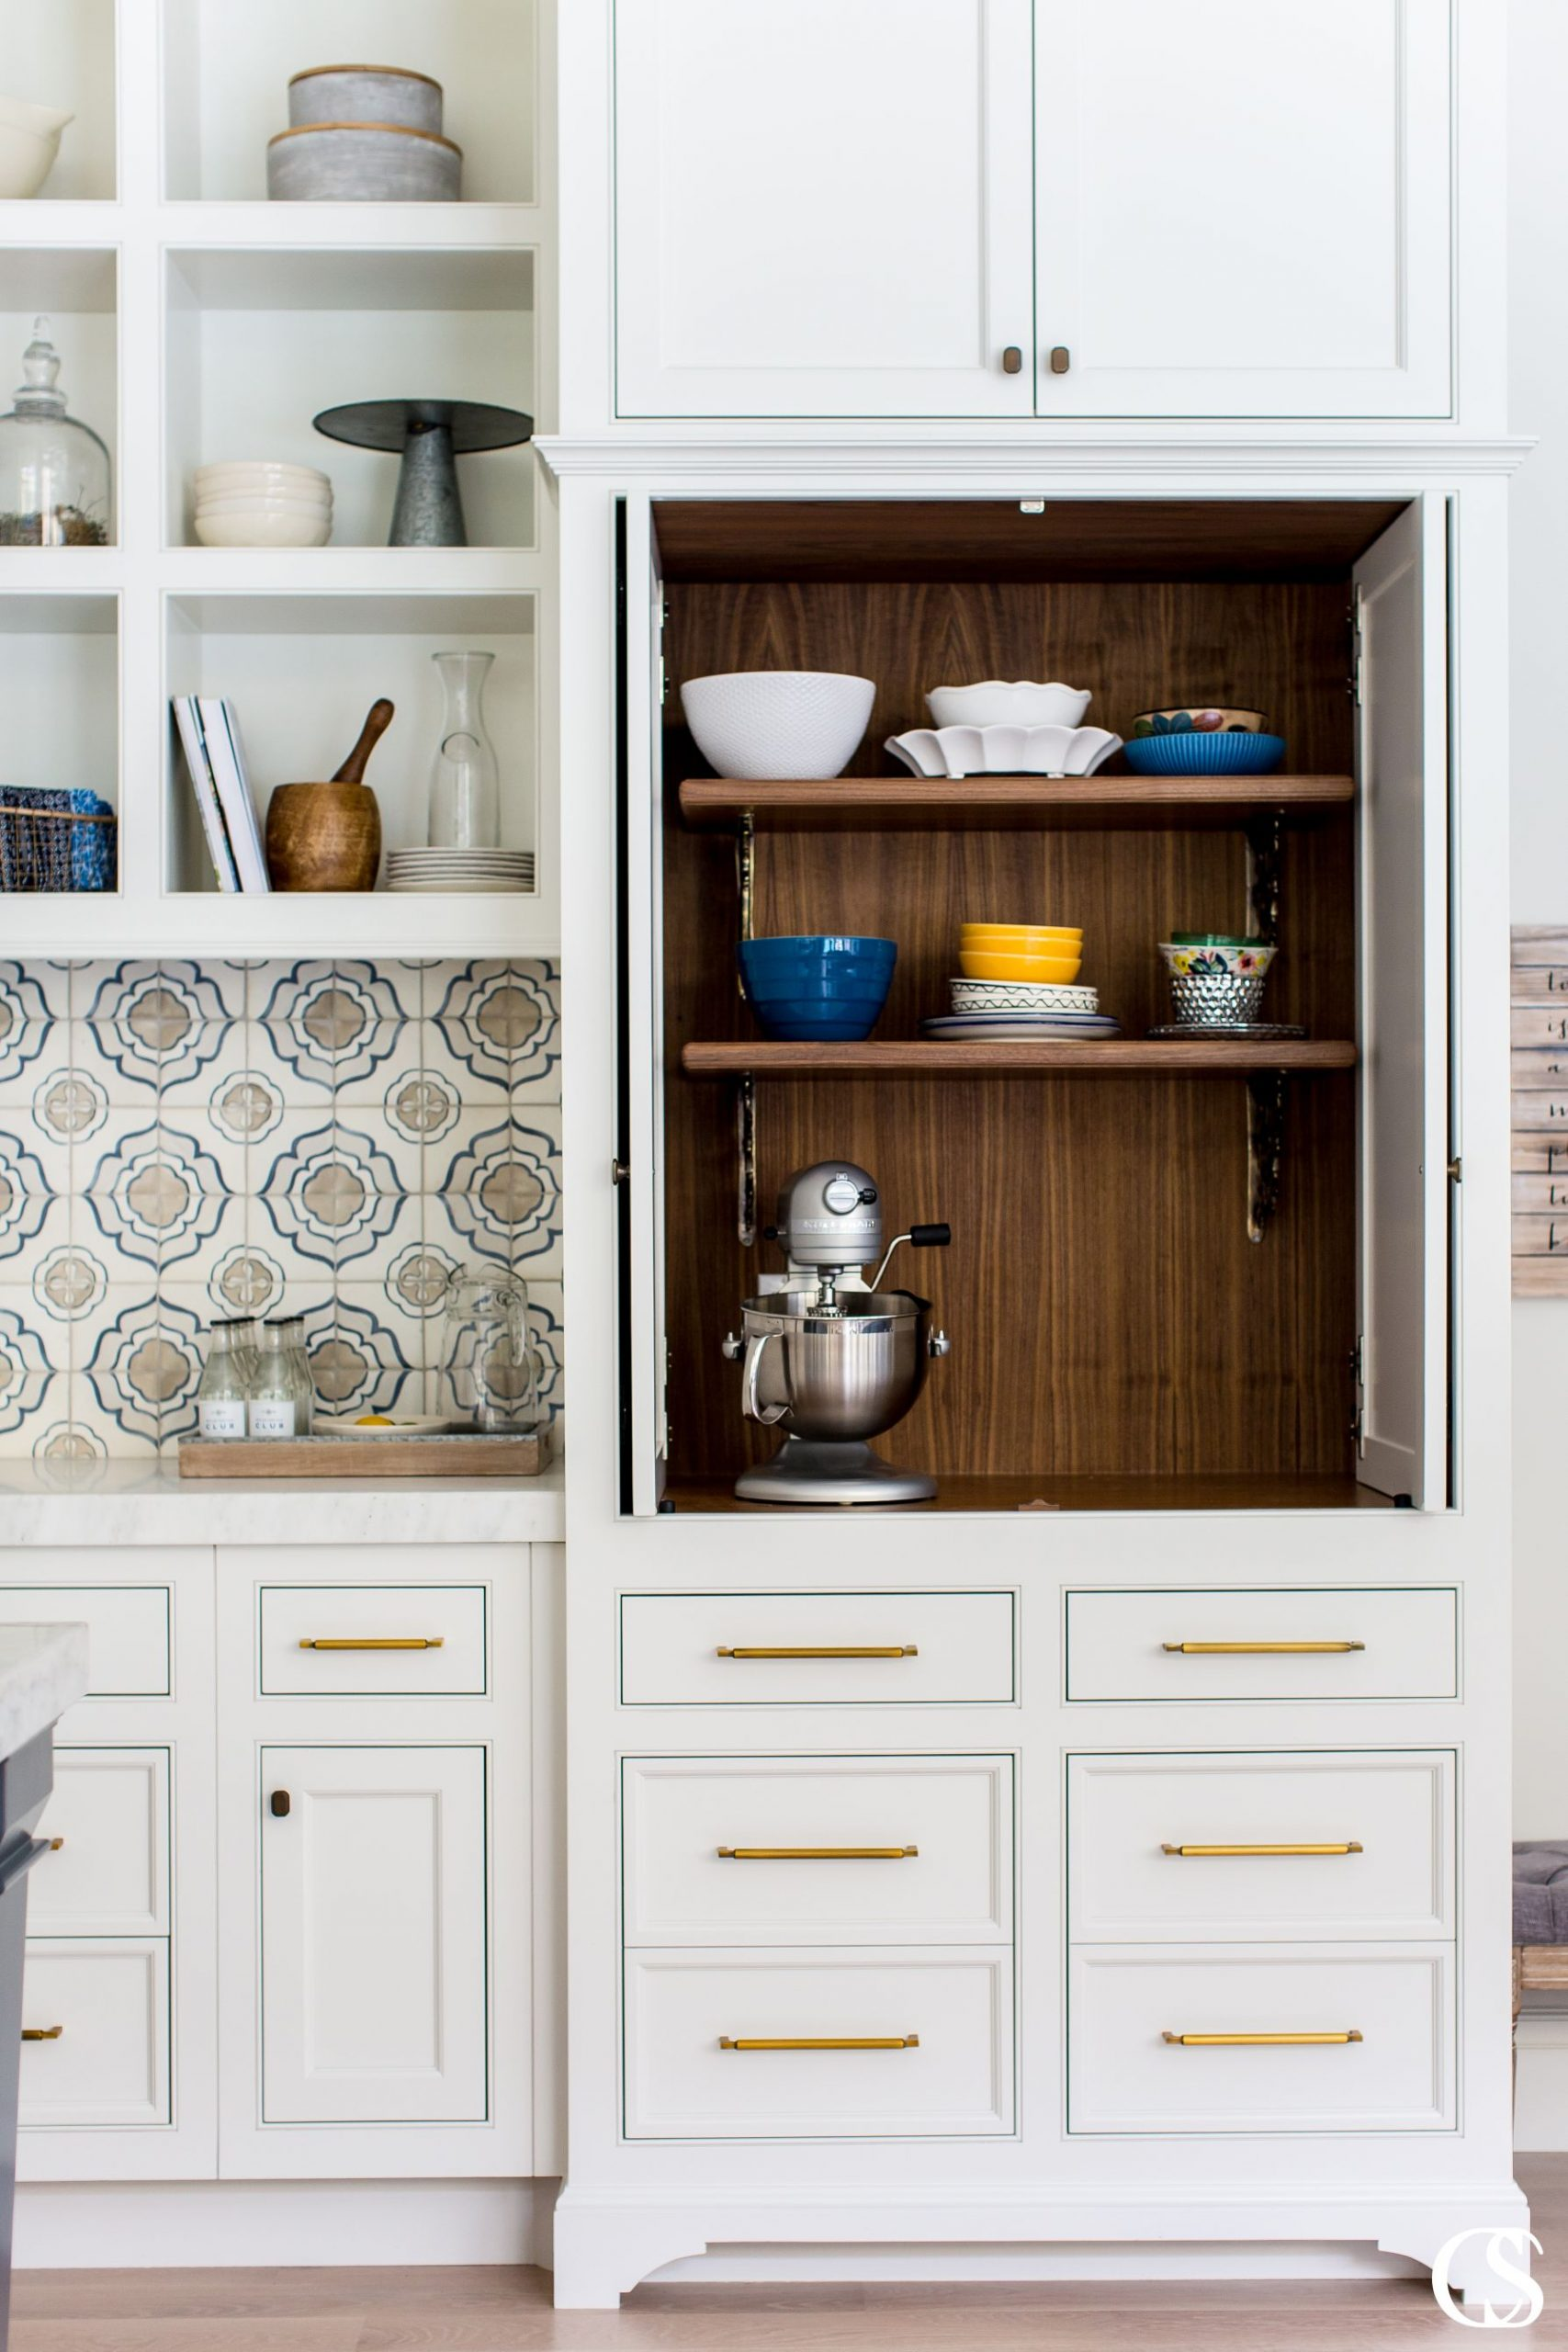 This unique kitchen cabinet design conjures memories of a vintage kitchen while offering complementary modern elements to balance out the look. Dare you not to dream of that custom tile backsplash!